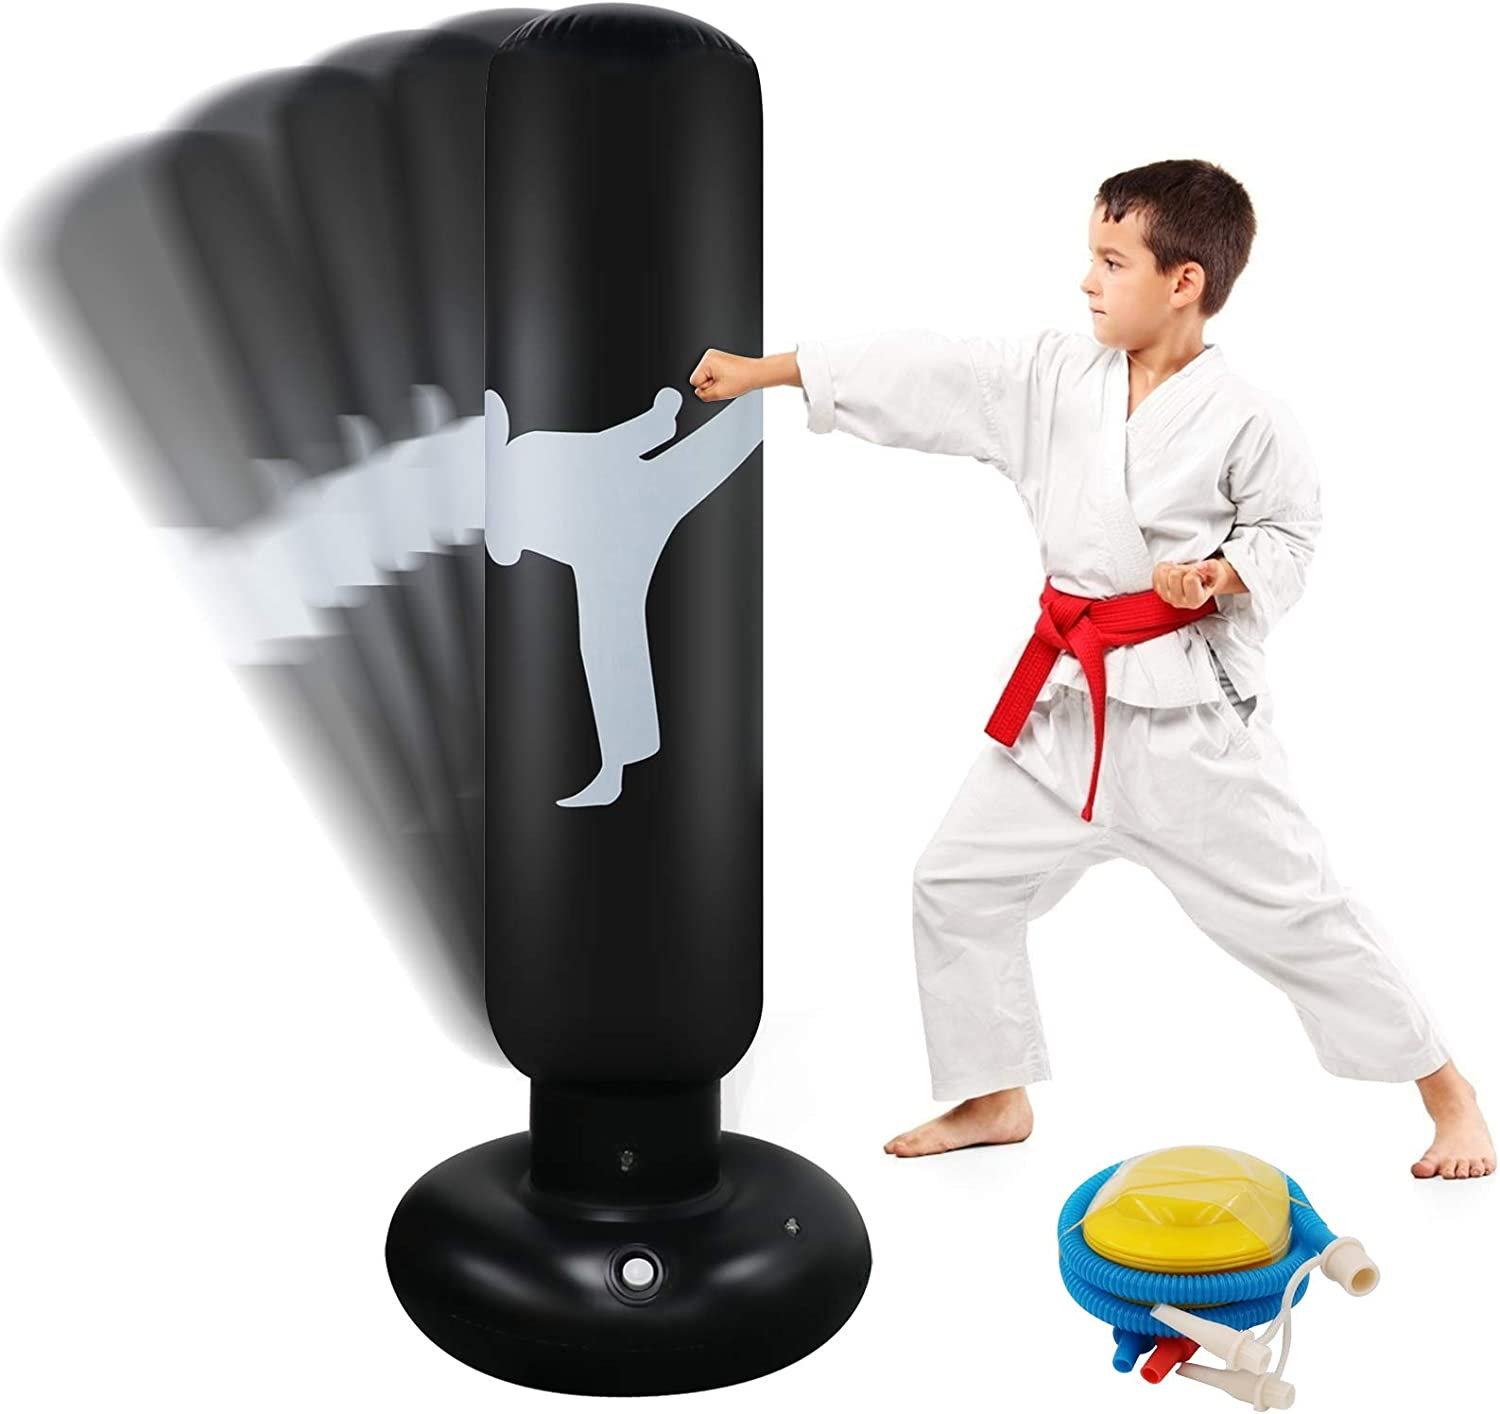 Focus Punching All stores are sold Bags Inflatable Bag for Inch Fr Kids Fixed price for sale 63